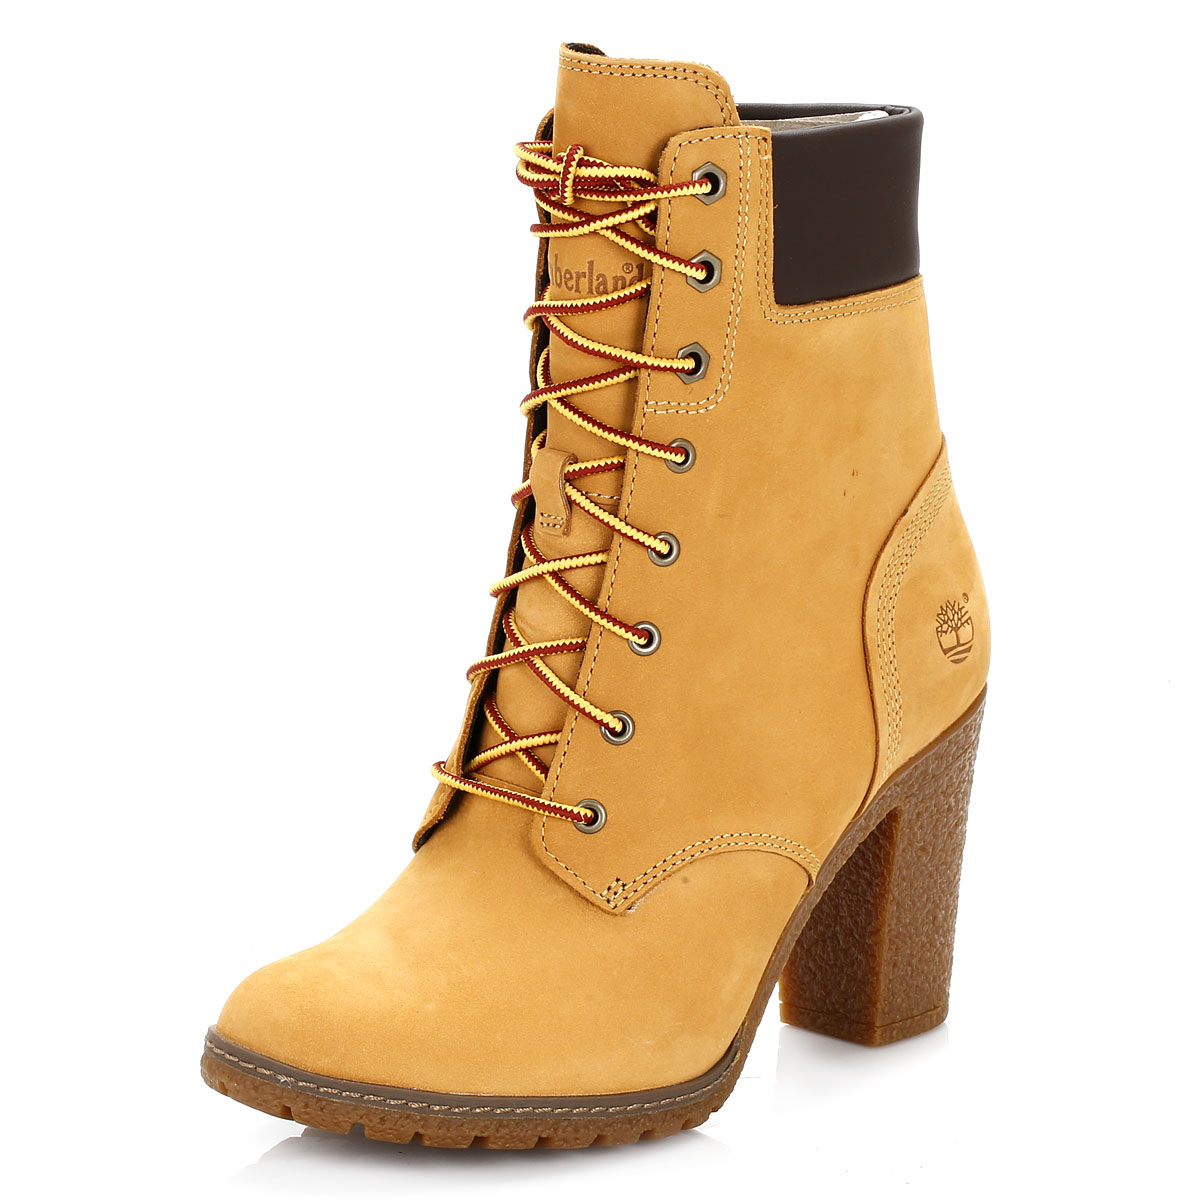 Model In Part Through A Big Push To Expand The Womens Footwear And Apparel Business Timberland, Maker Of The Iconic Yellow Waterproof Boot, Said It Was Confident That VF Would Protect And Enhance Its Repu